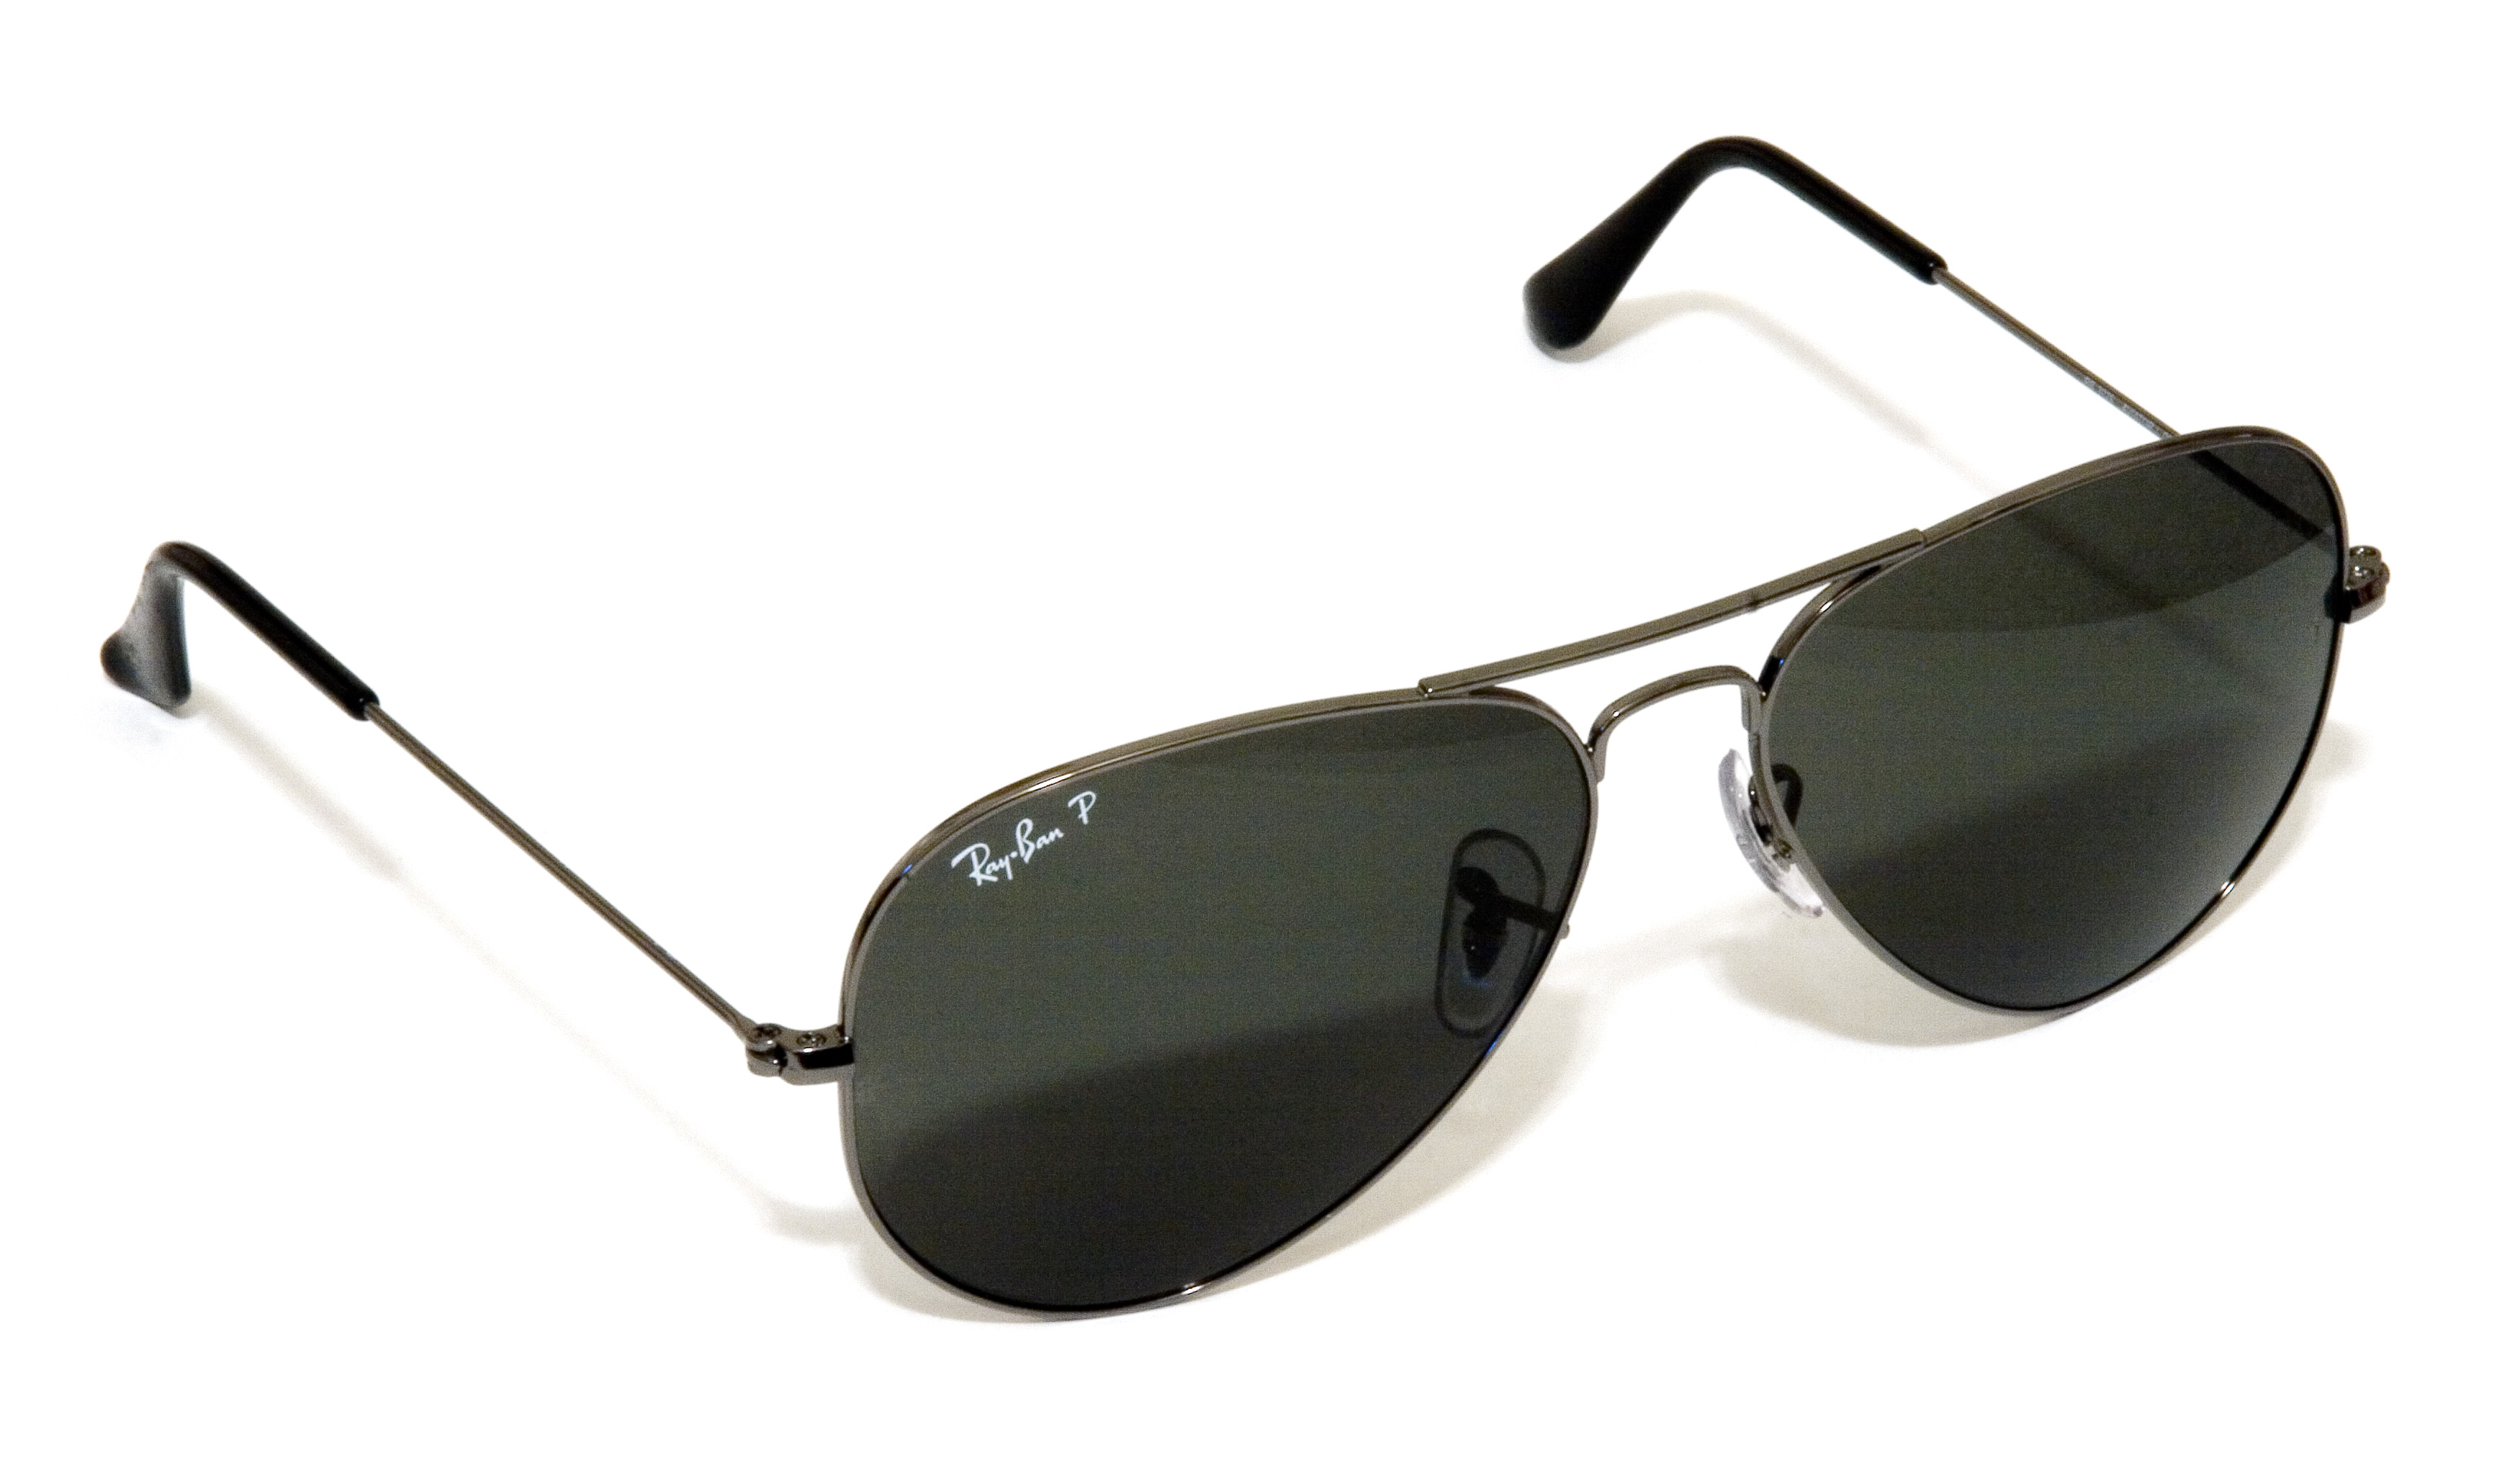 3fbbfdf9c3 Aviator sunglasses - Wikipedia